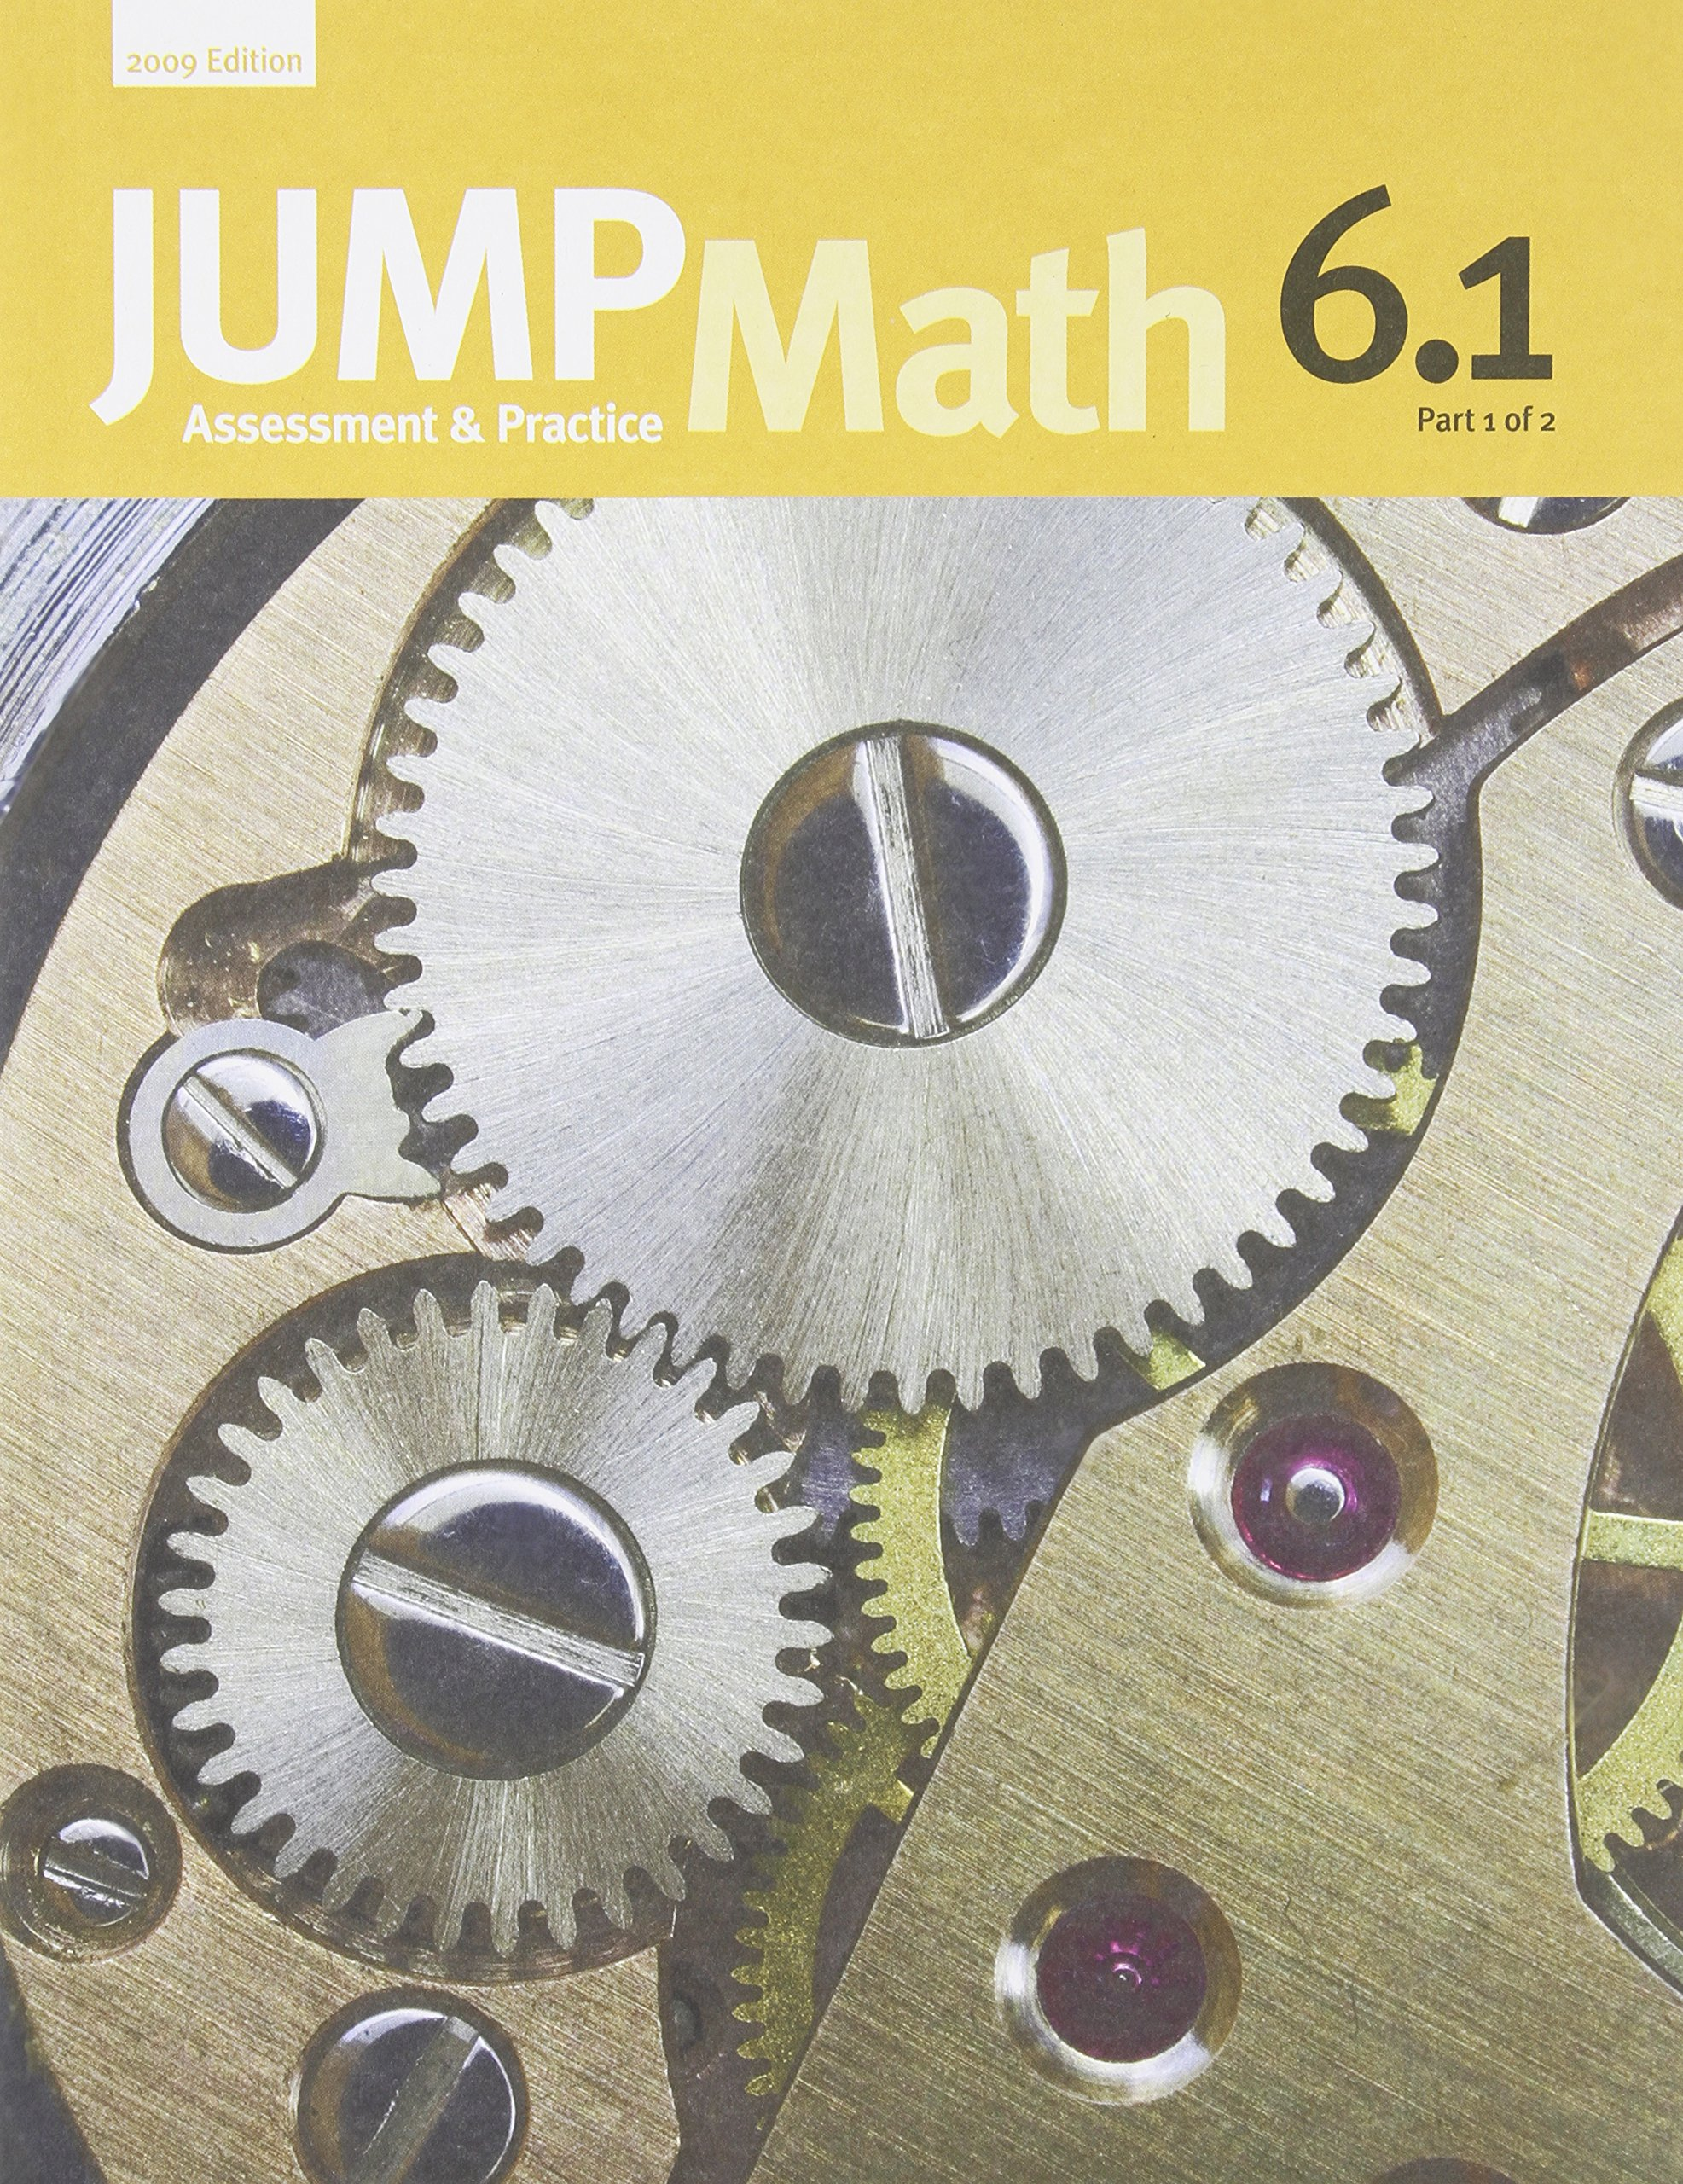 JUMP Math 61 Book 6 Part 1 of 2 Amazonca John Mighton JUMP – Jump Math Worksheets